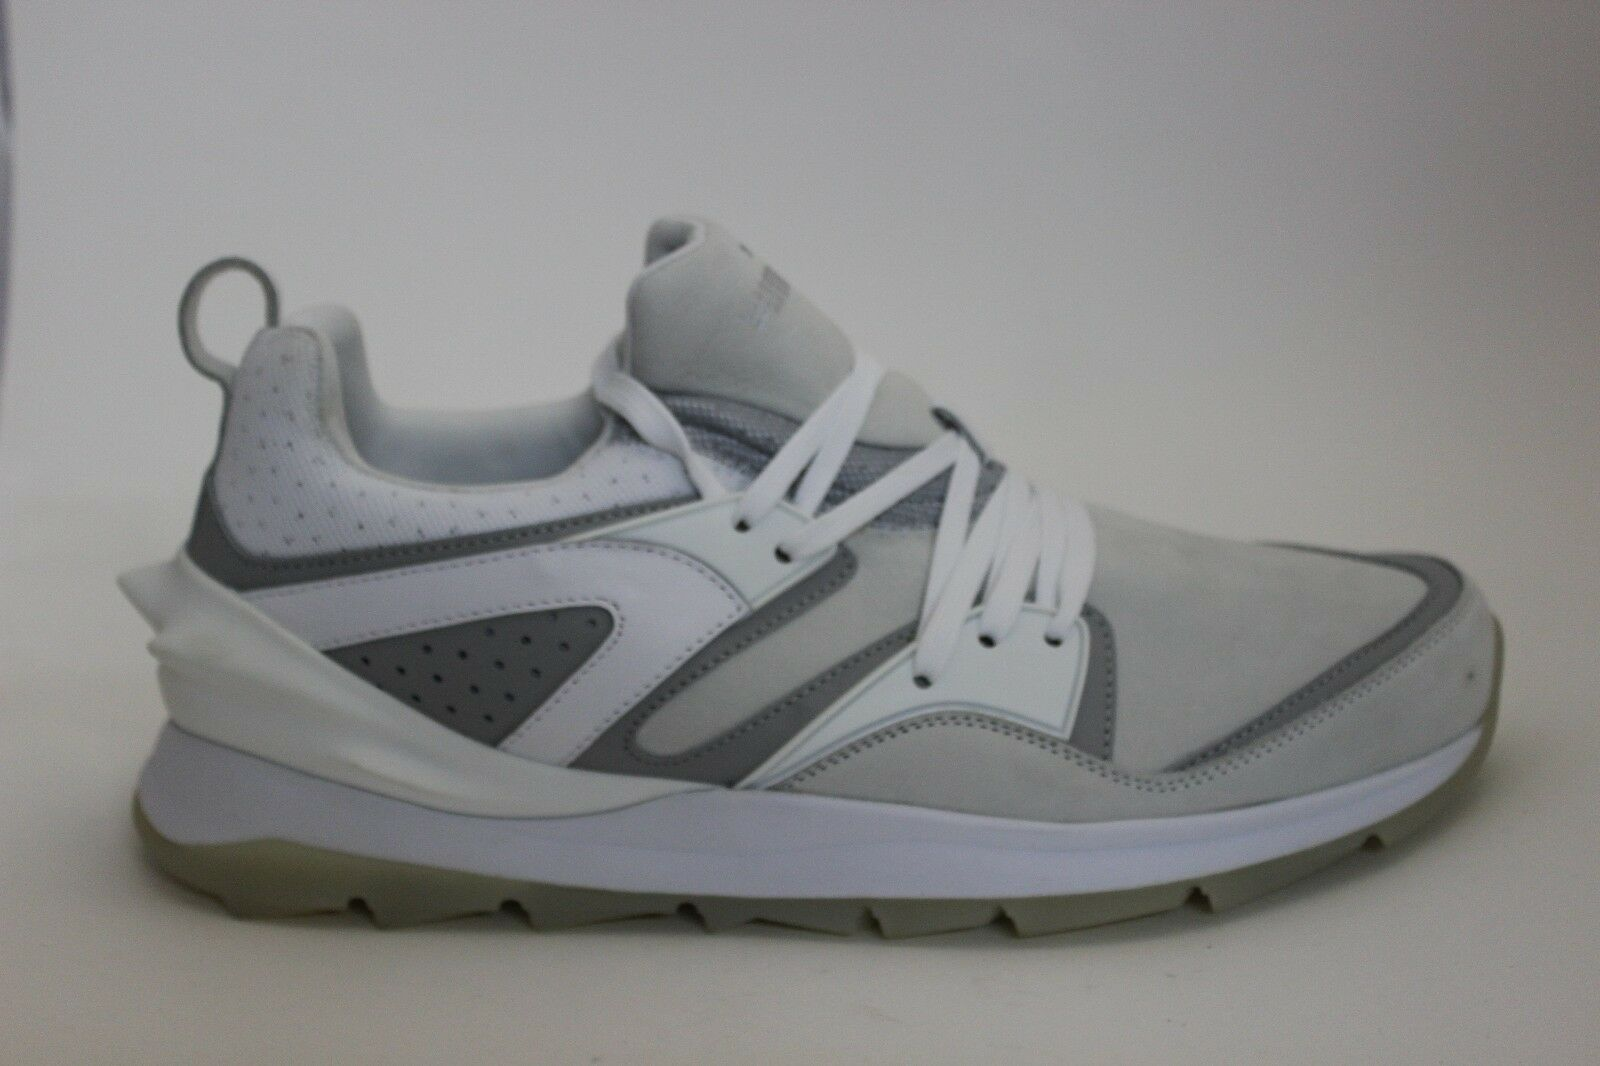 BLEMISHED Men's Puma Blaze Swift Tech 35782402 White New In Box BLEMISHED